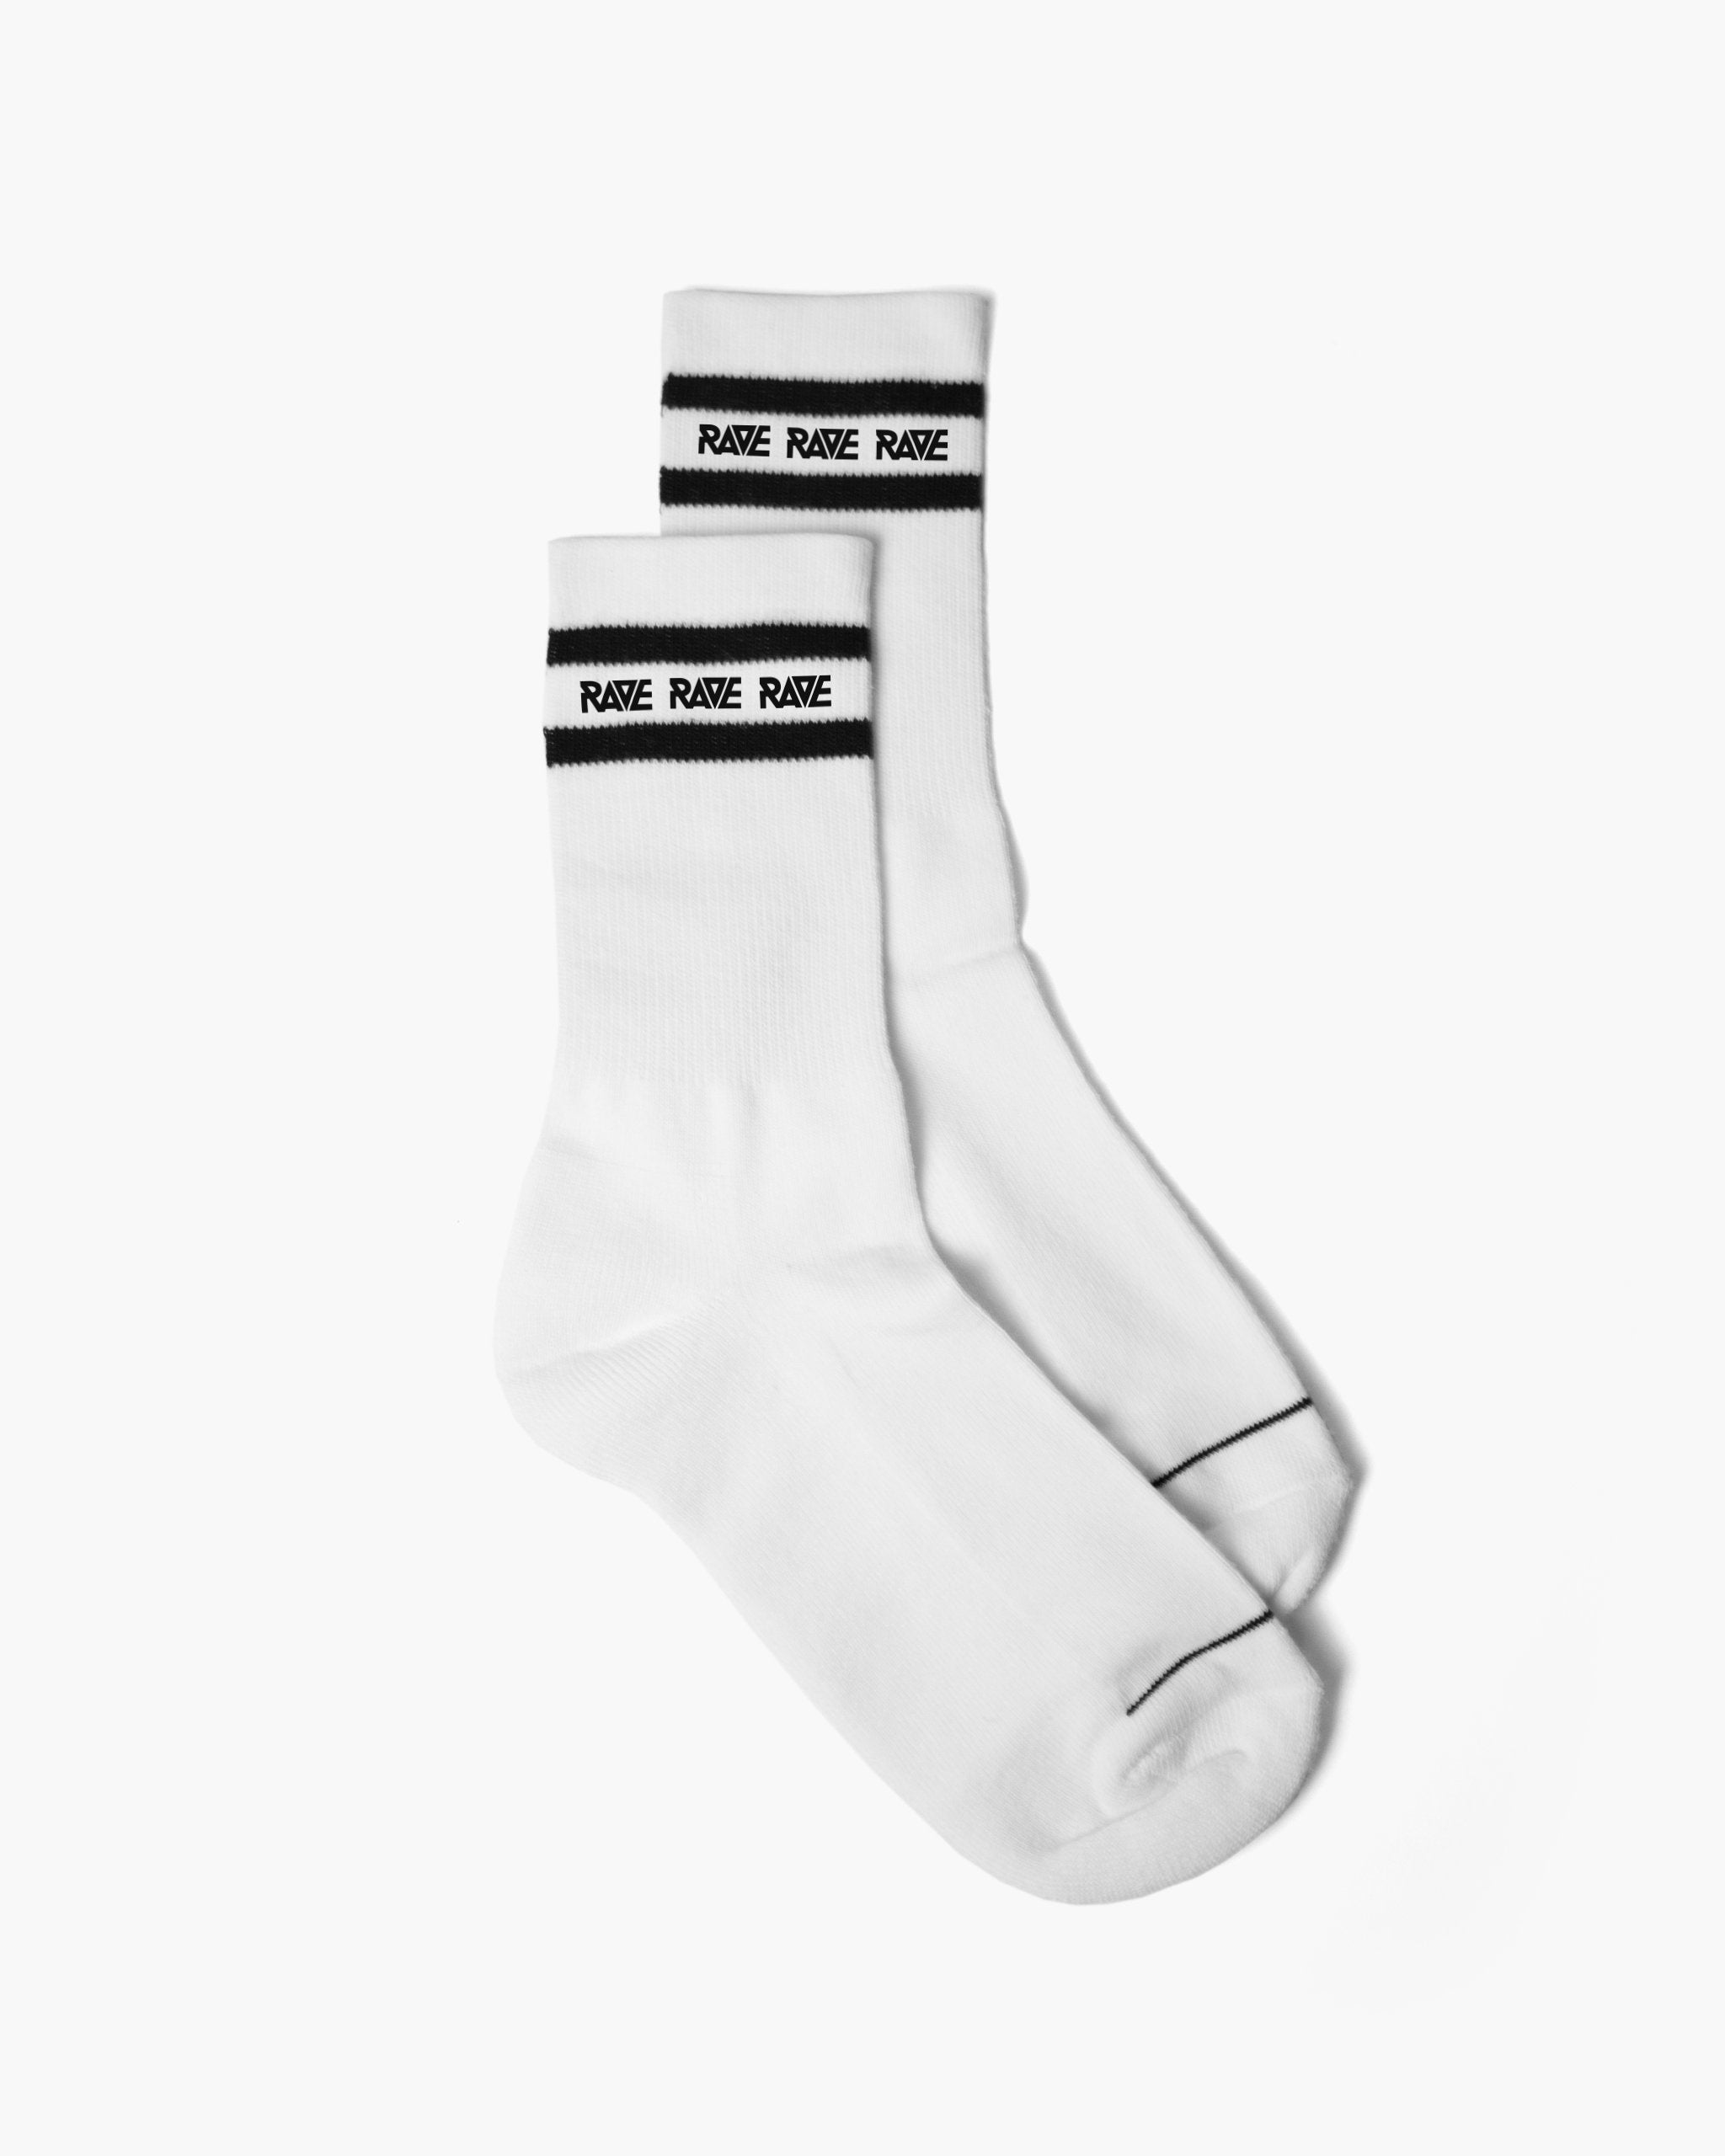 RAVE crew socks in white by RAVE Clothing